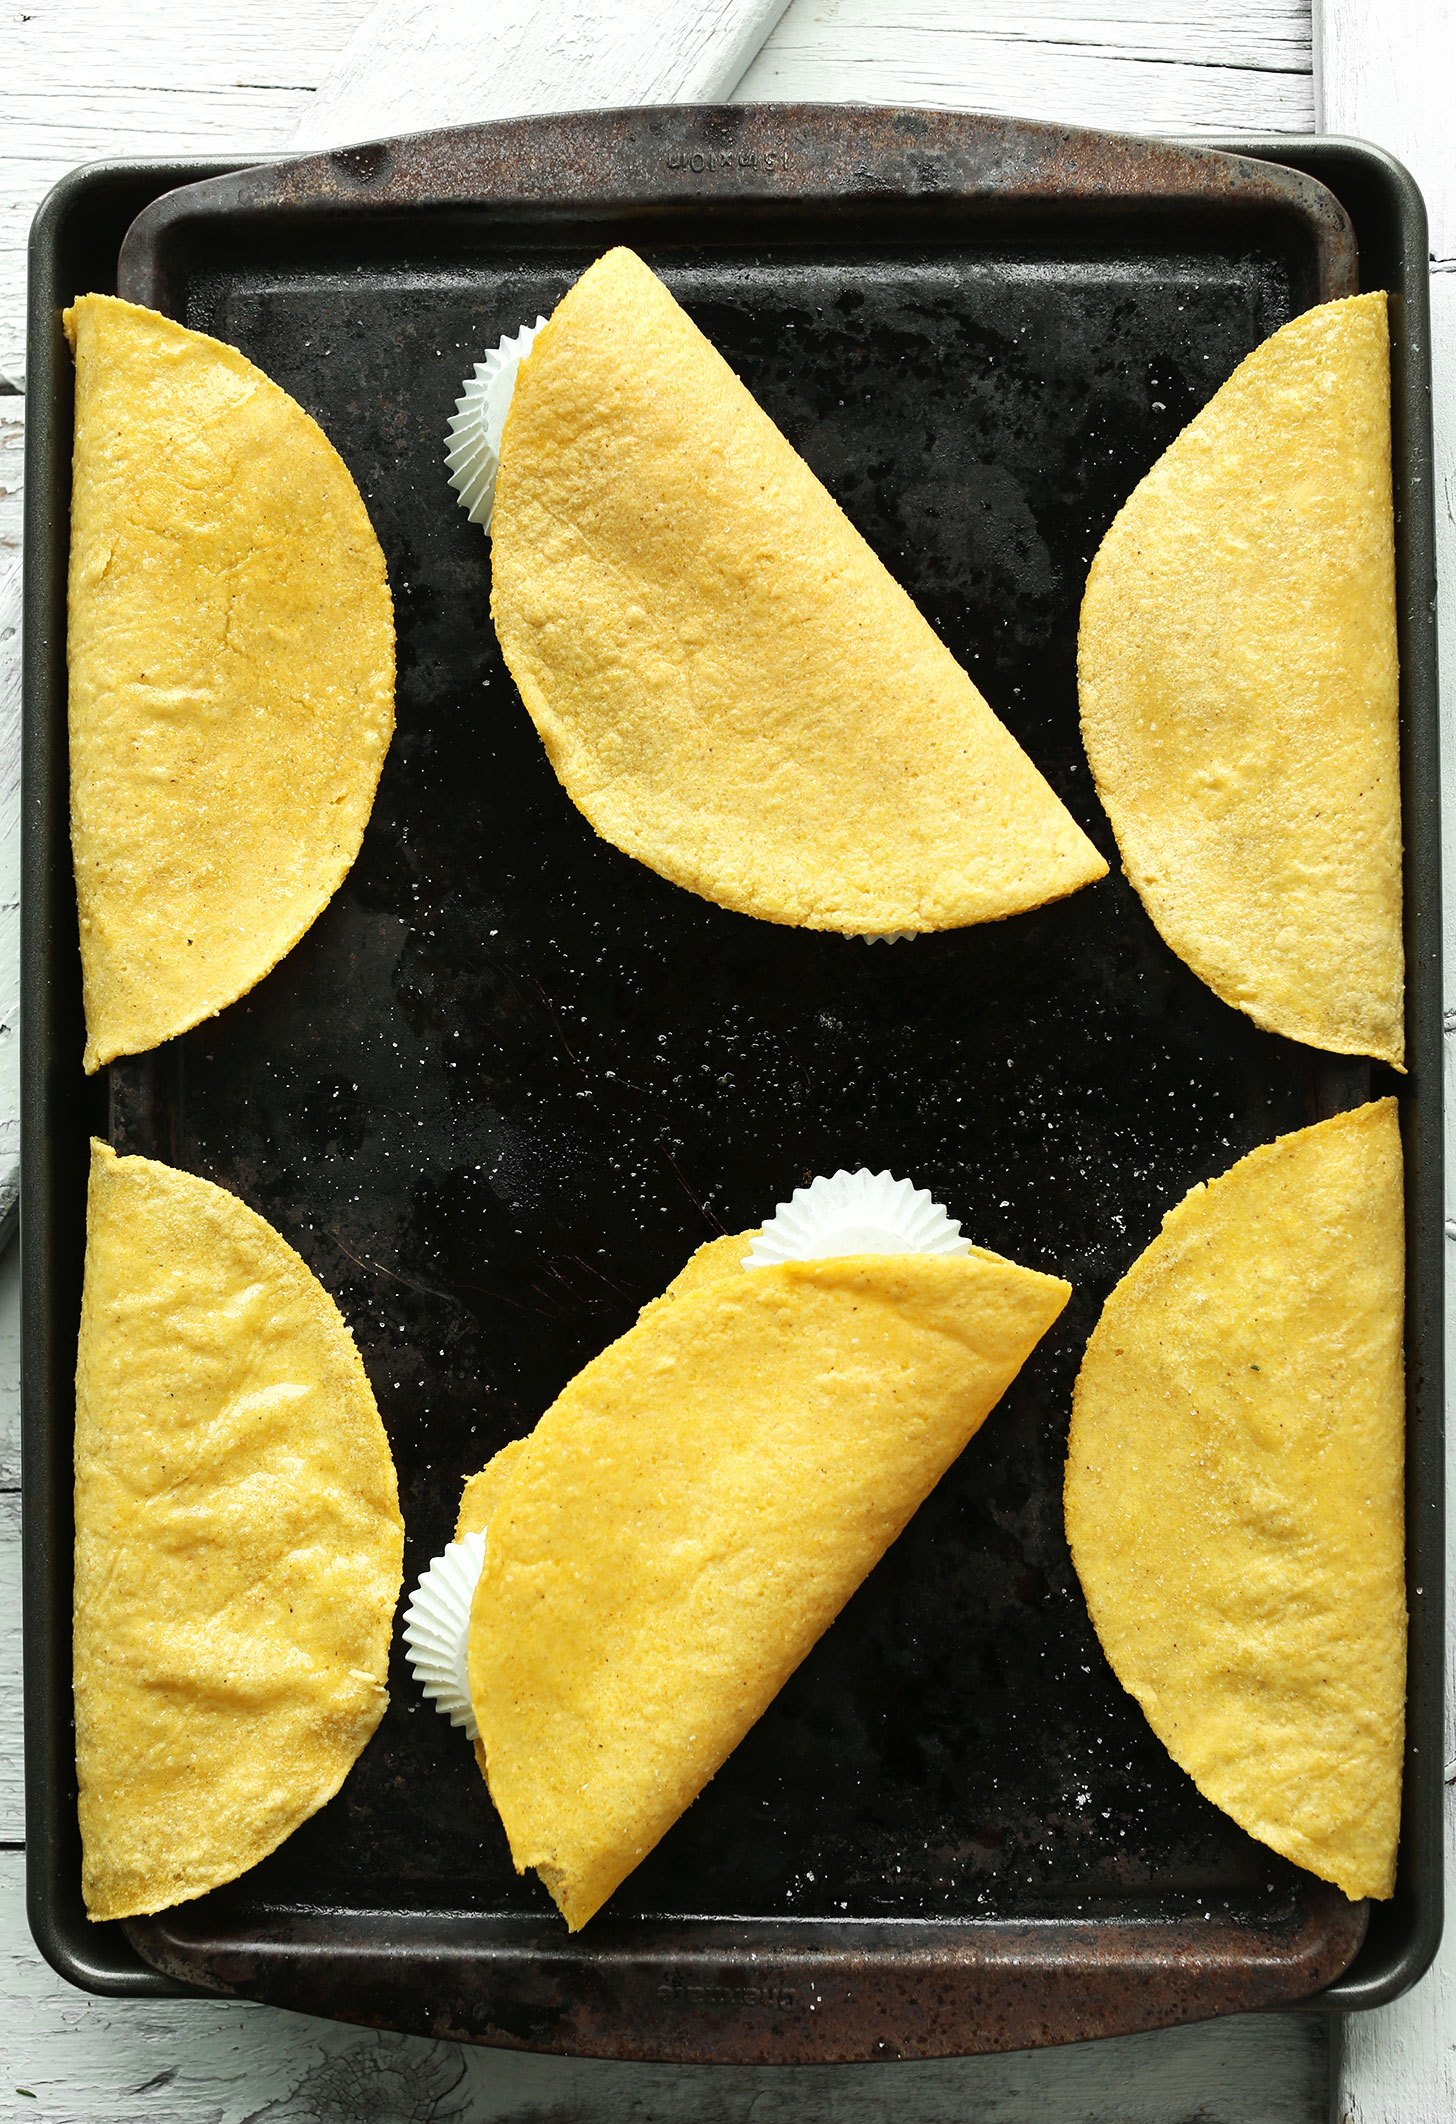 Baking sheet showing how to make homemade Crispy Baked Corn Taco Shells